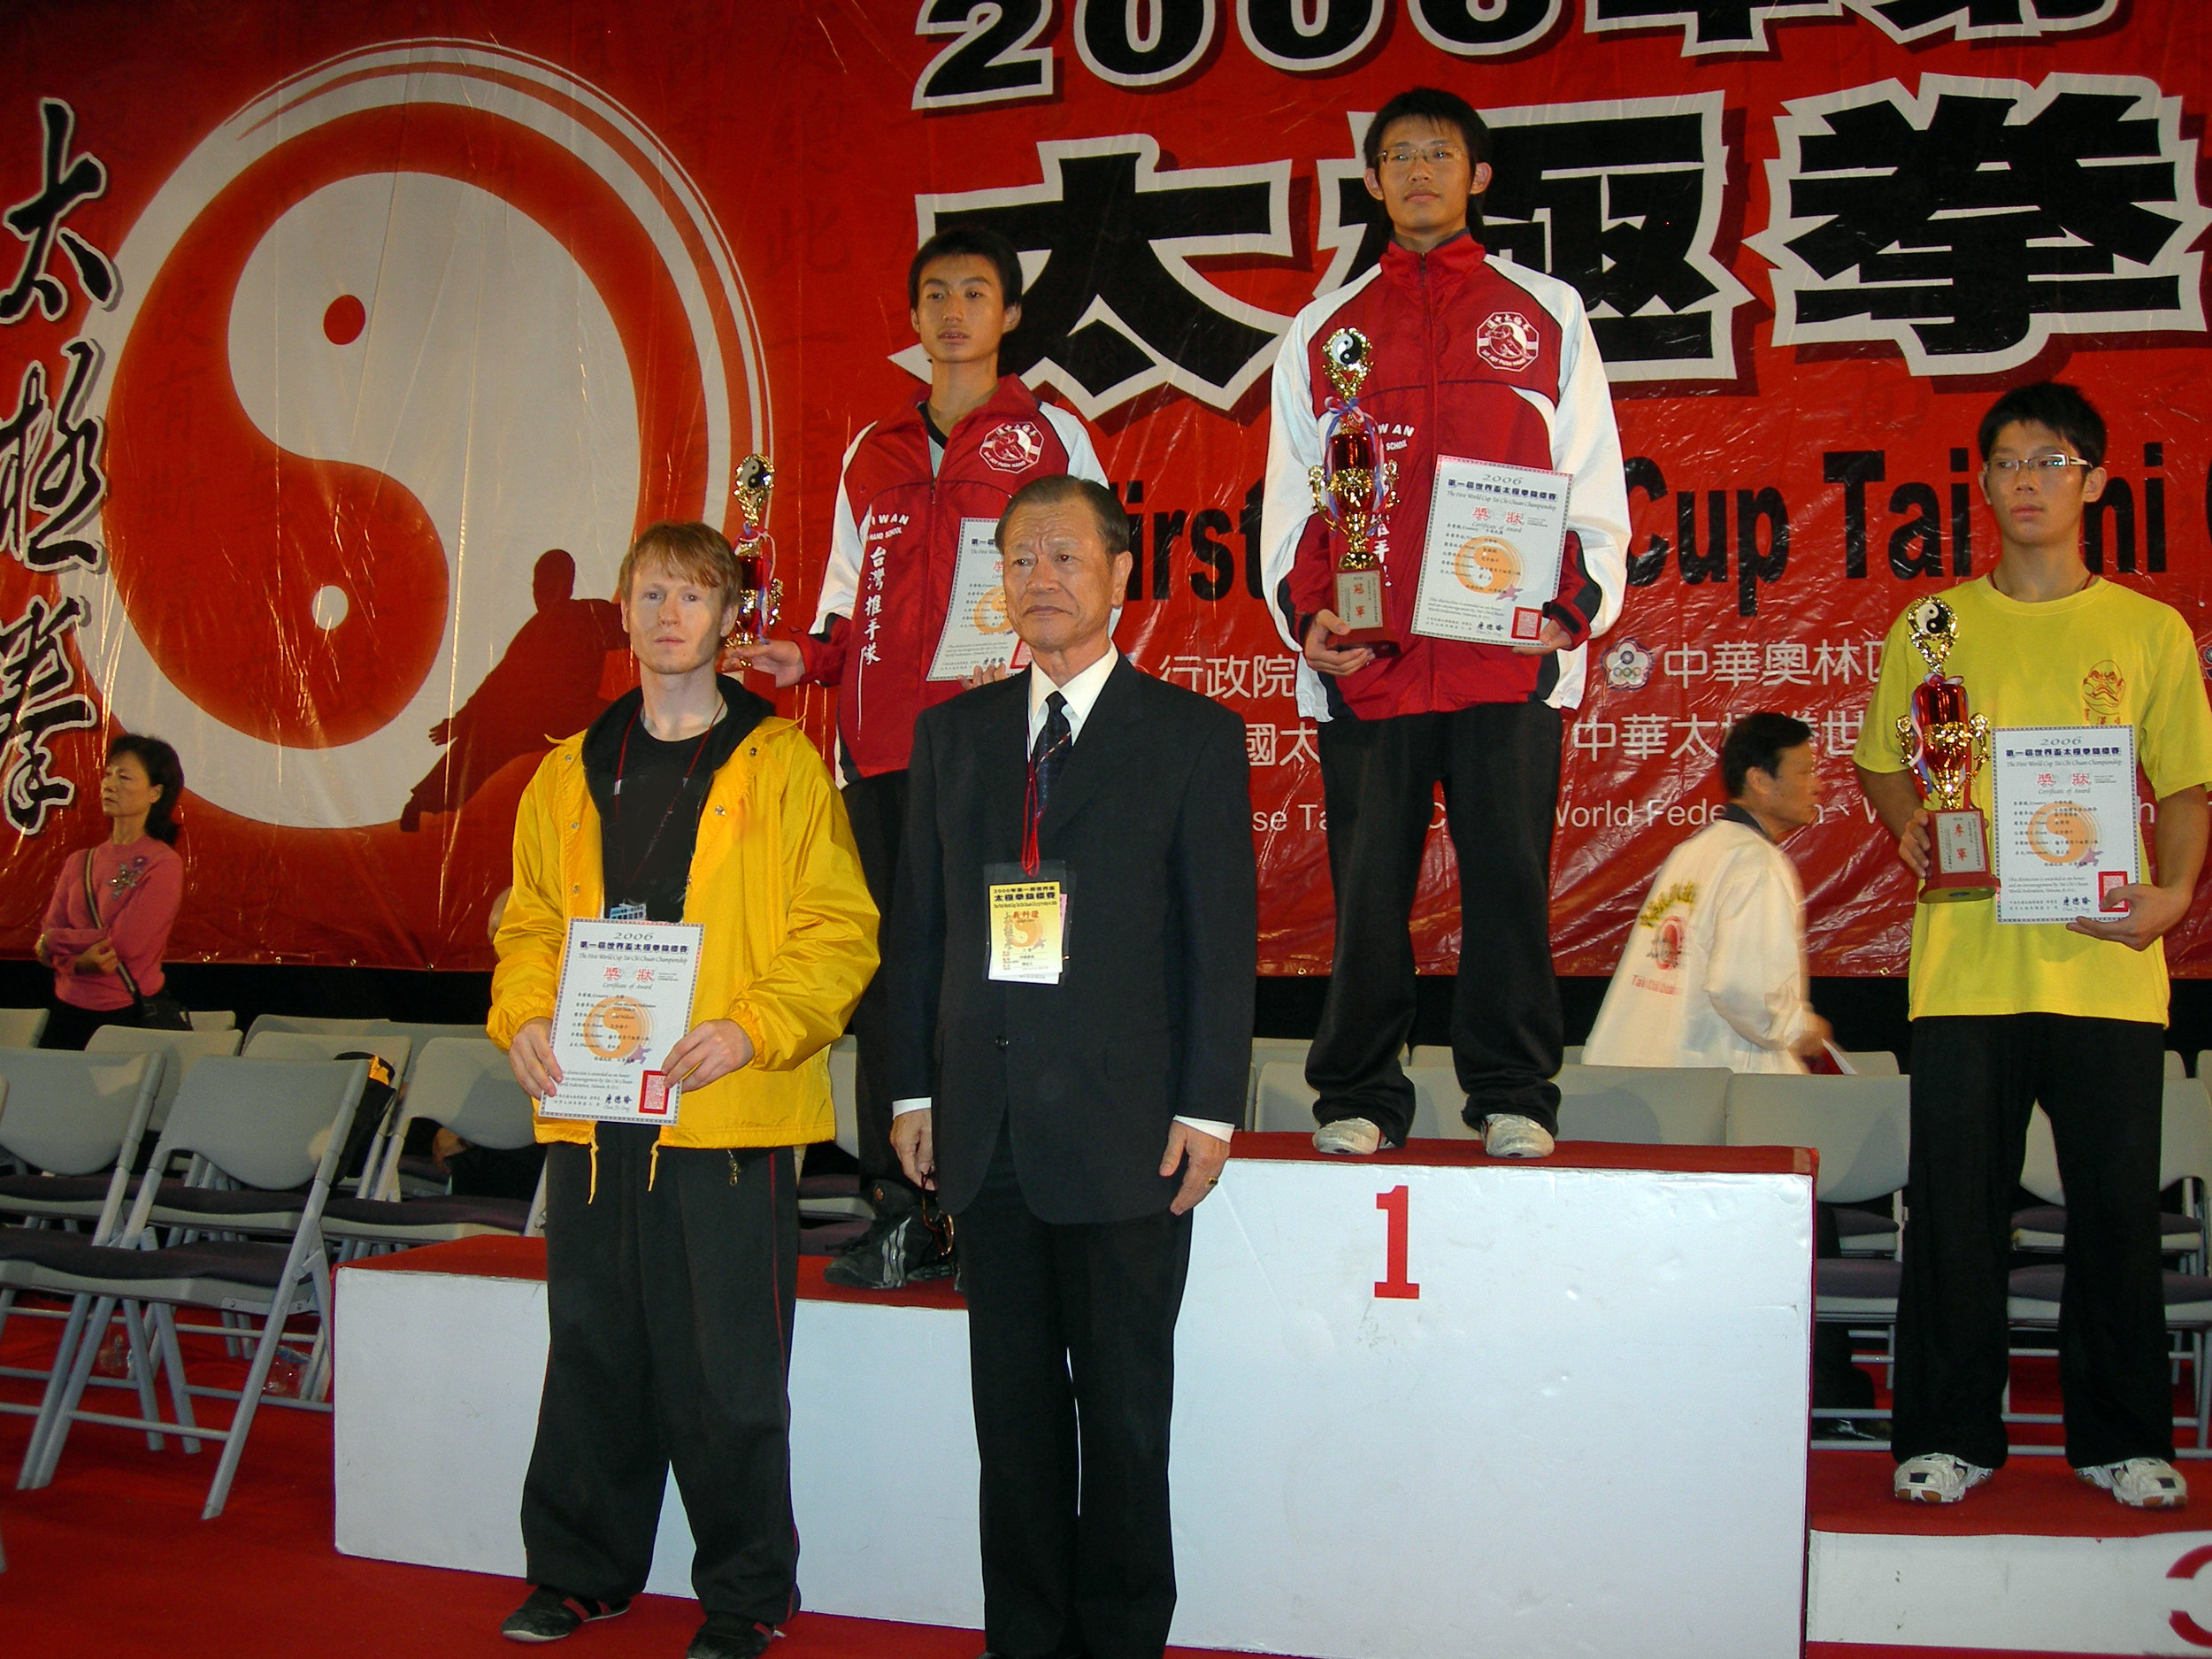 1st World Cup Tai Chi Championship 2006, Niel wins 4th place.